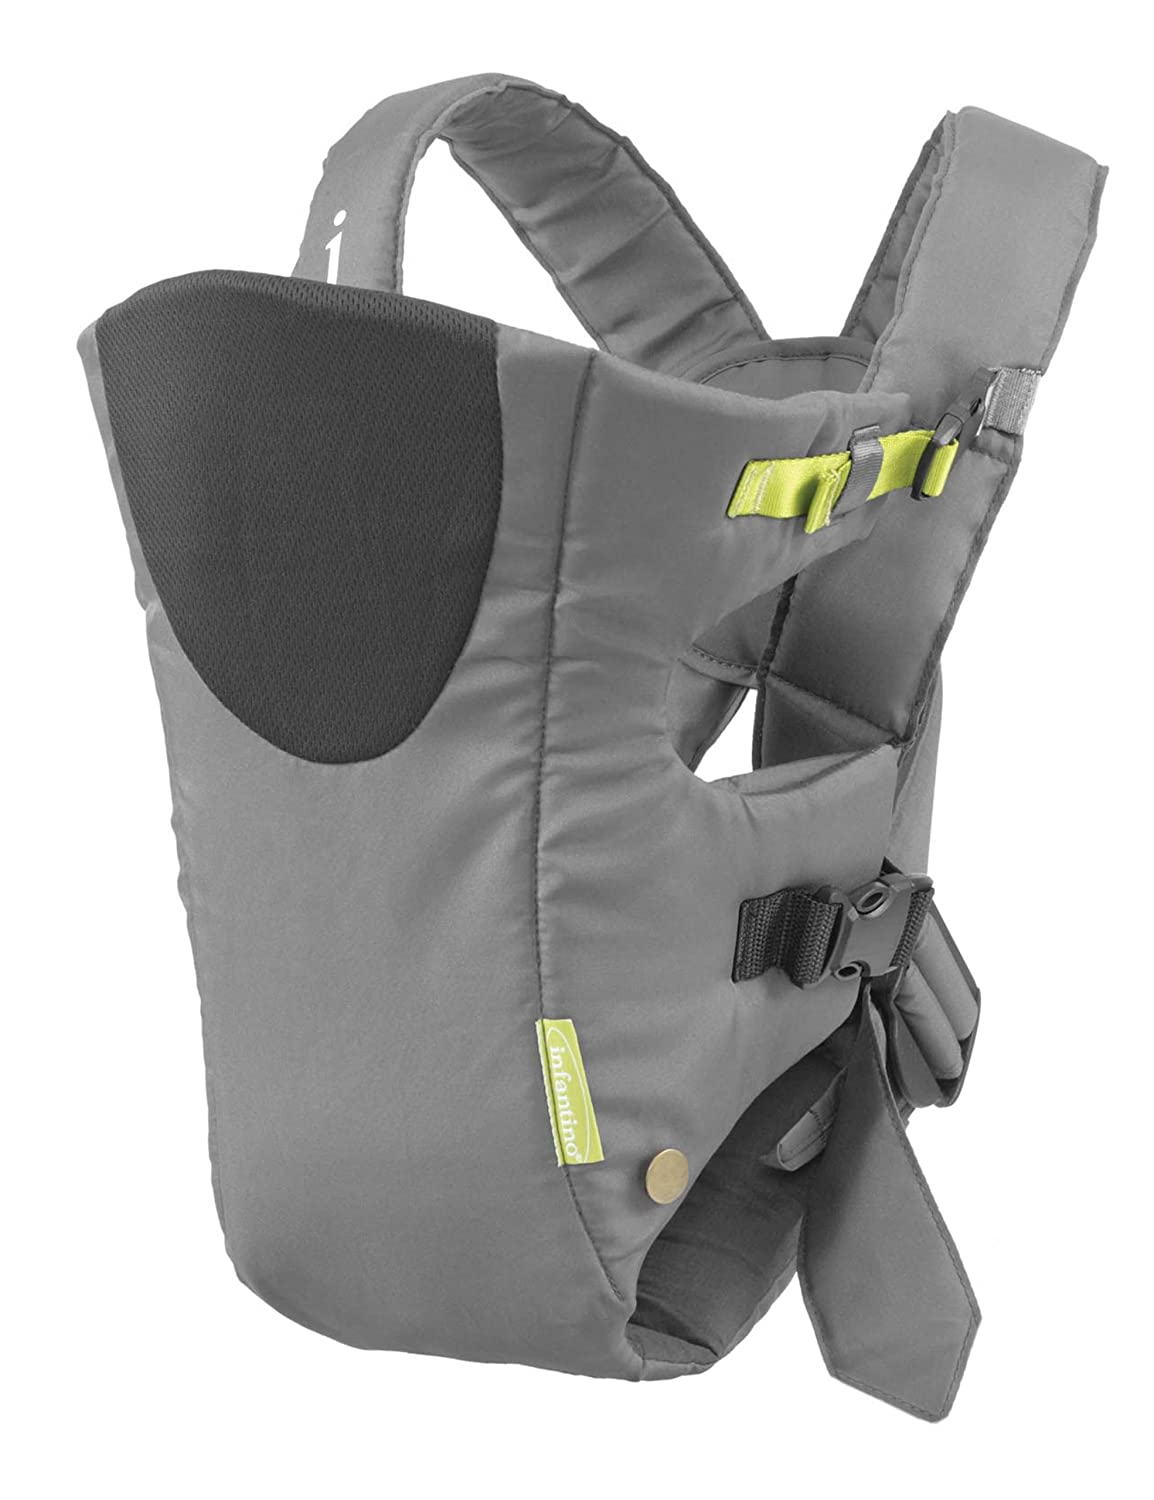 Amazon.com : Infantino Breathe Vented Carrier, Grey : Child Carrier Front Packs